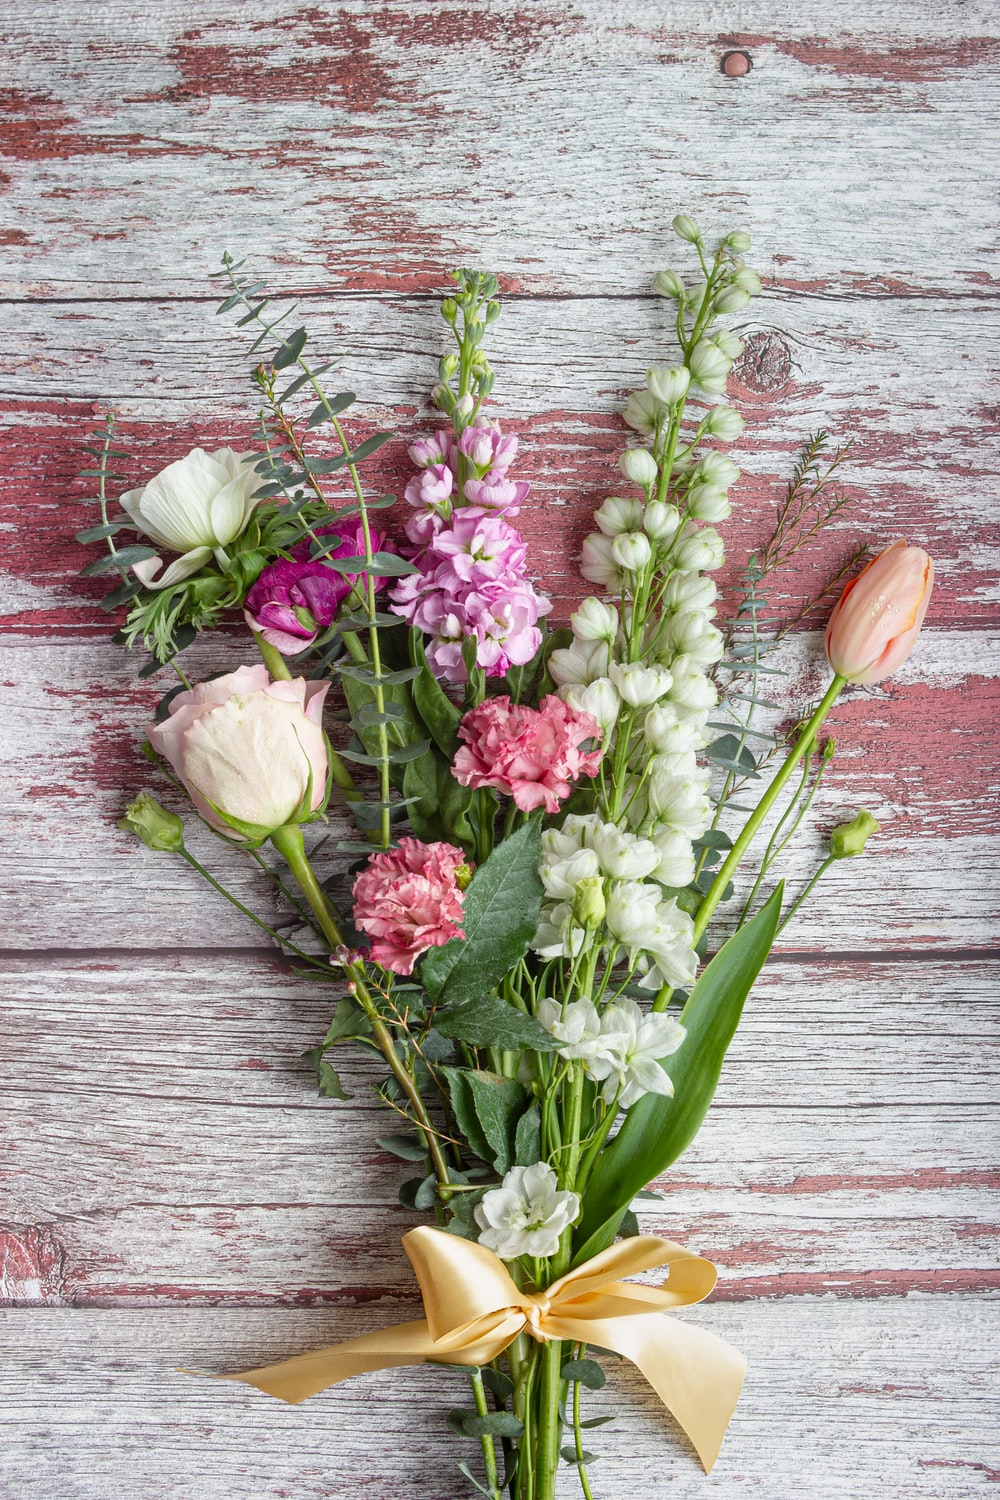 pink and white tulips on brown wooden surface